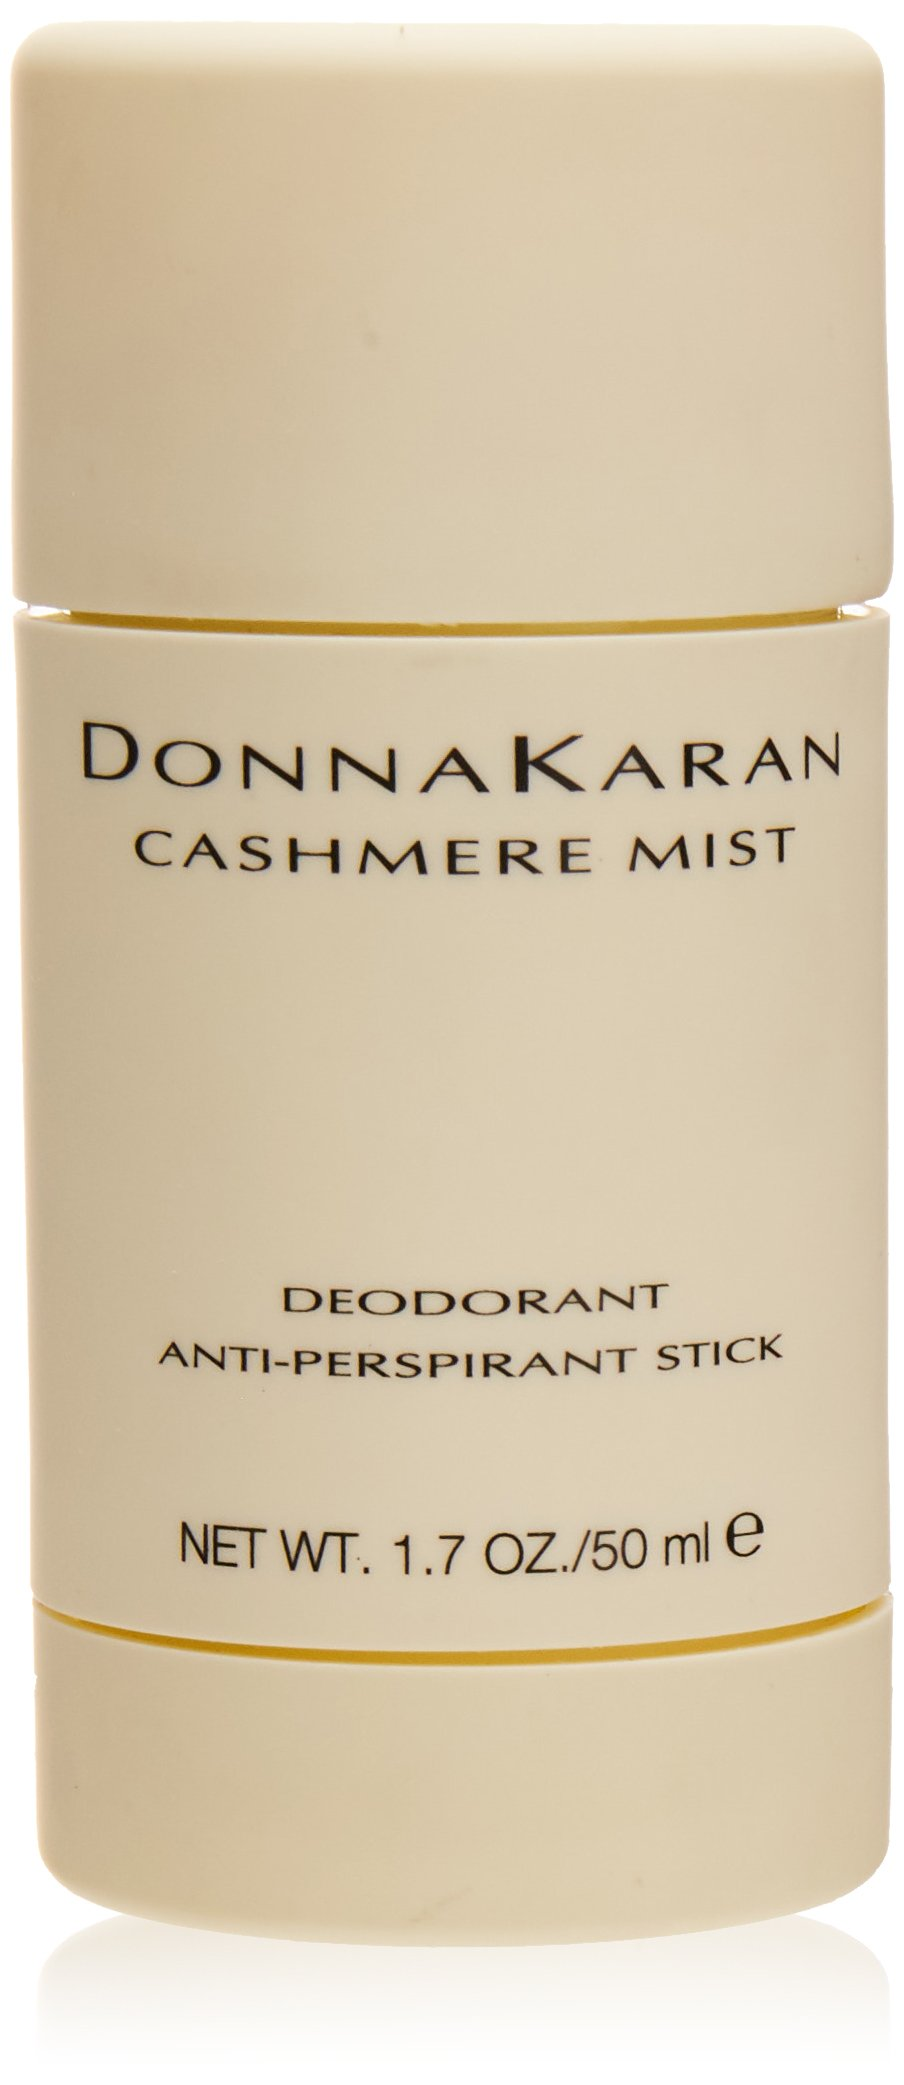 Donna Karan Cashmere Mist Anti-perspirant/Deodorant Stick For Women,1.7-Ounce by Donna Karan